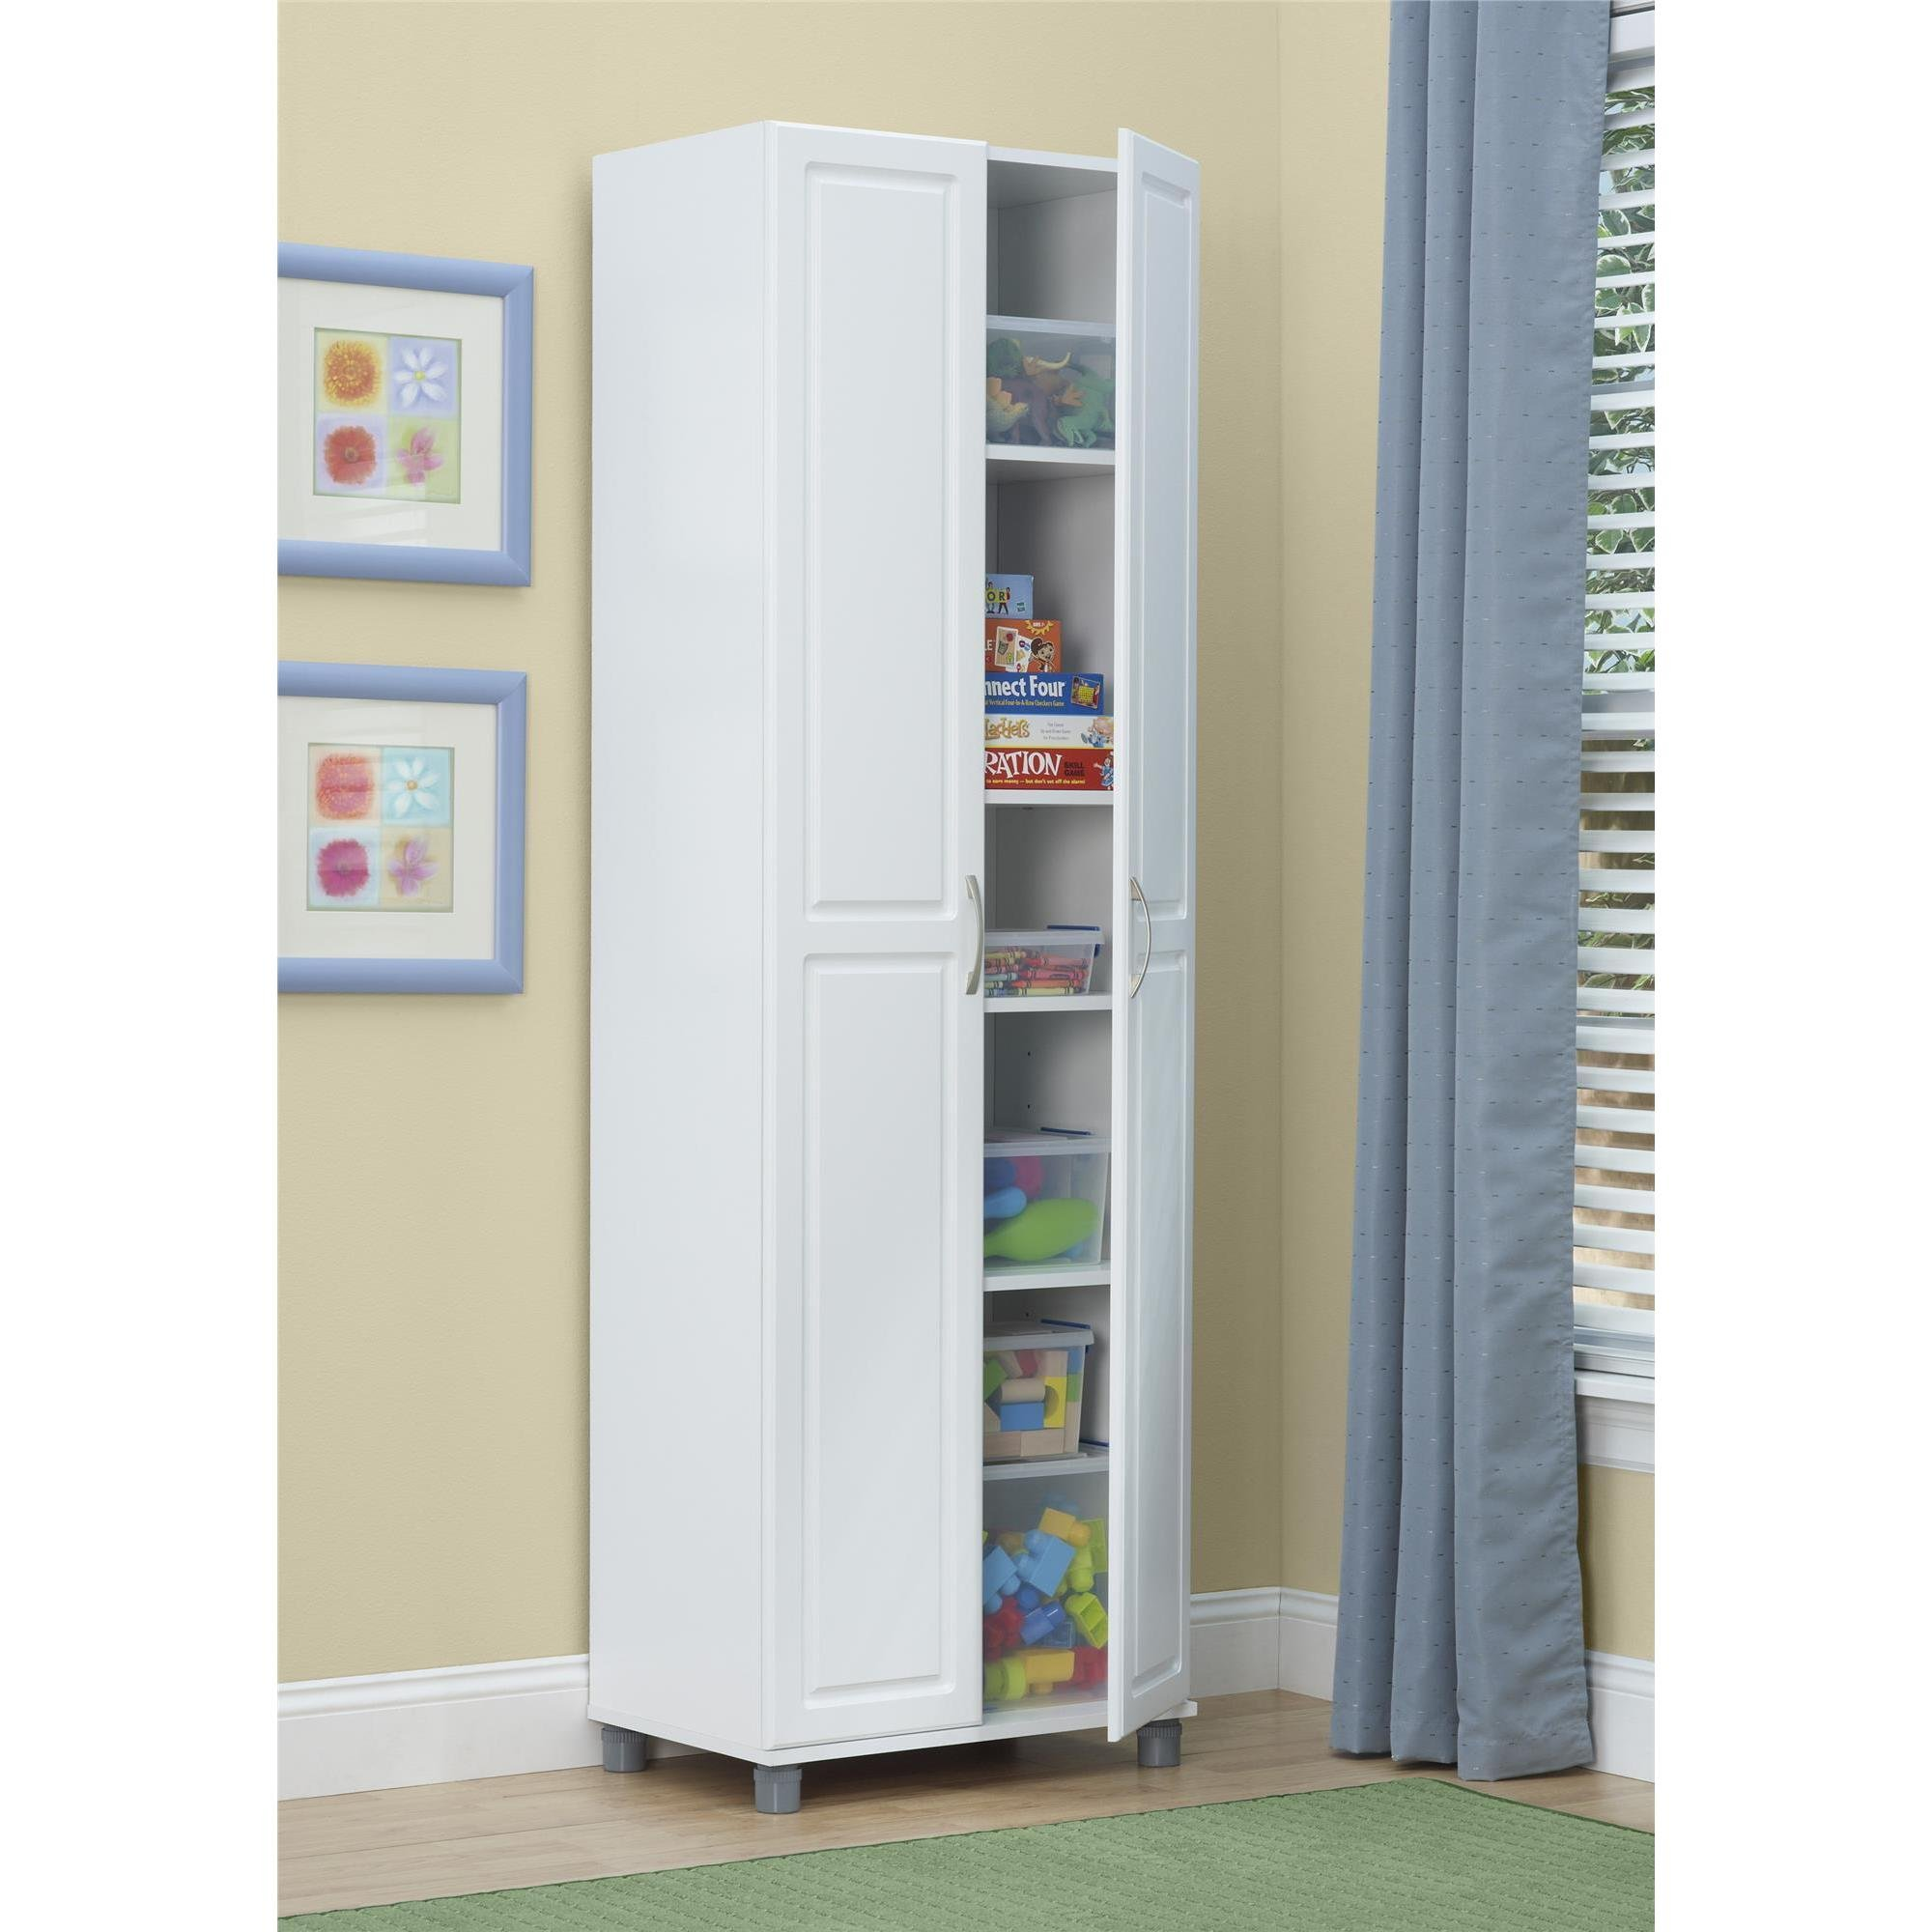 Altra SystemBuild White Kendall 24 inch Storage Cabinet, Perfect As A Kitchen Pantry Or In A Child's Playroom.